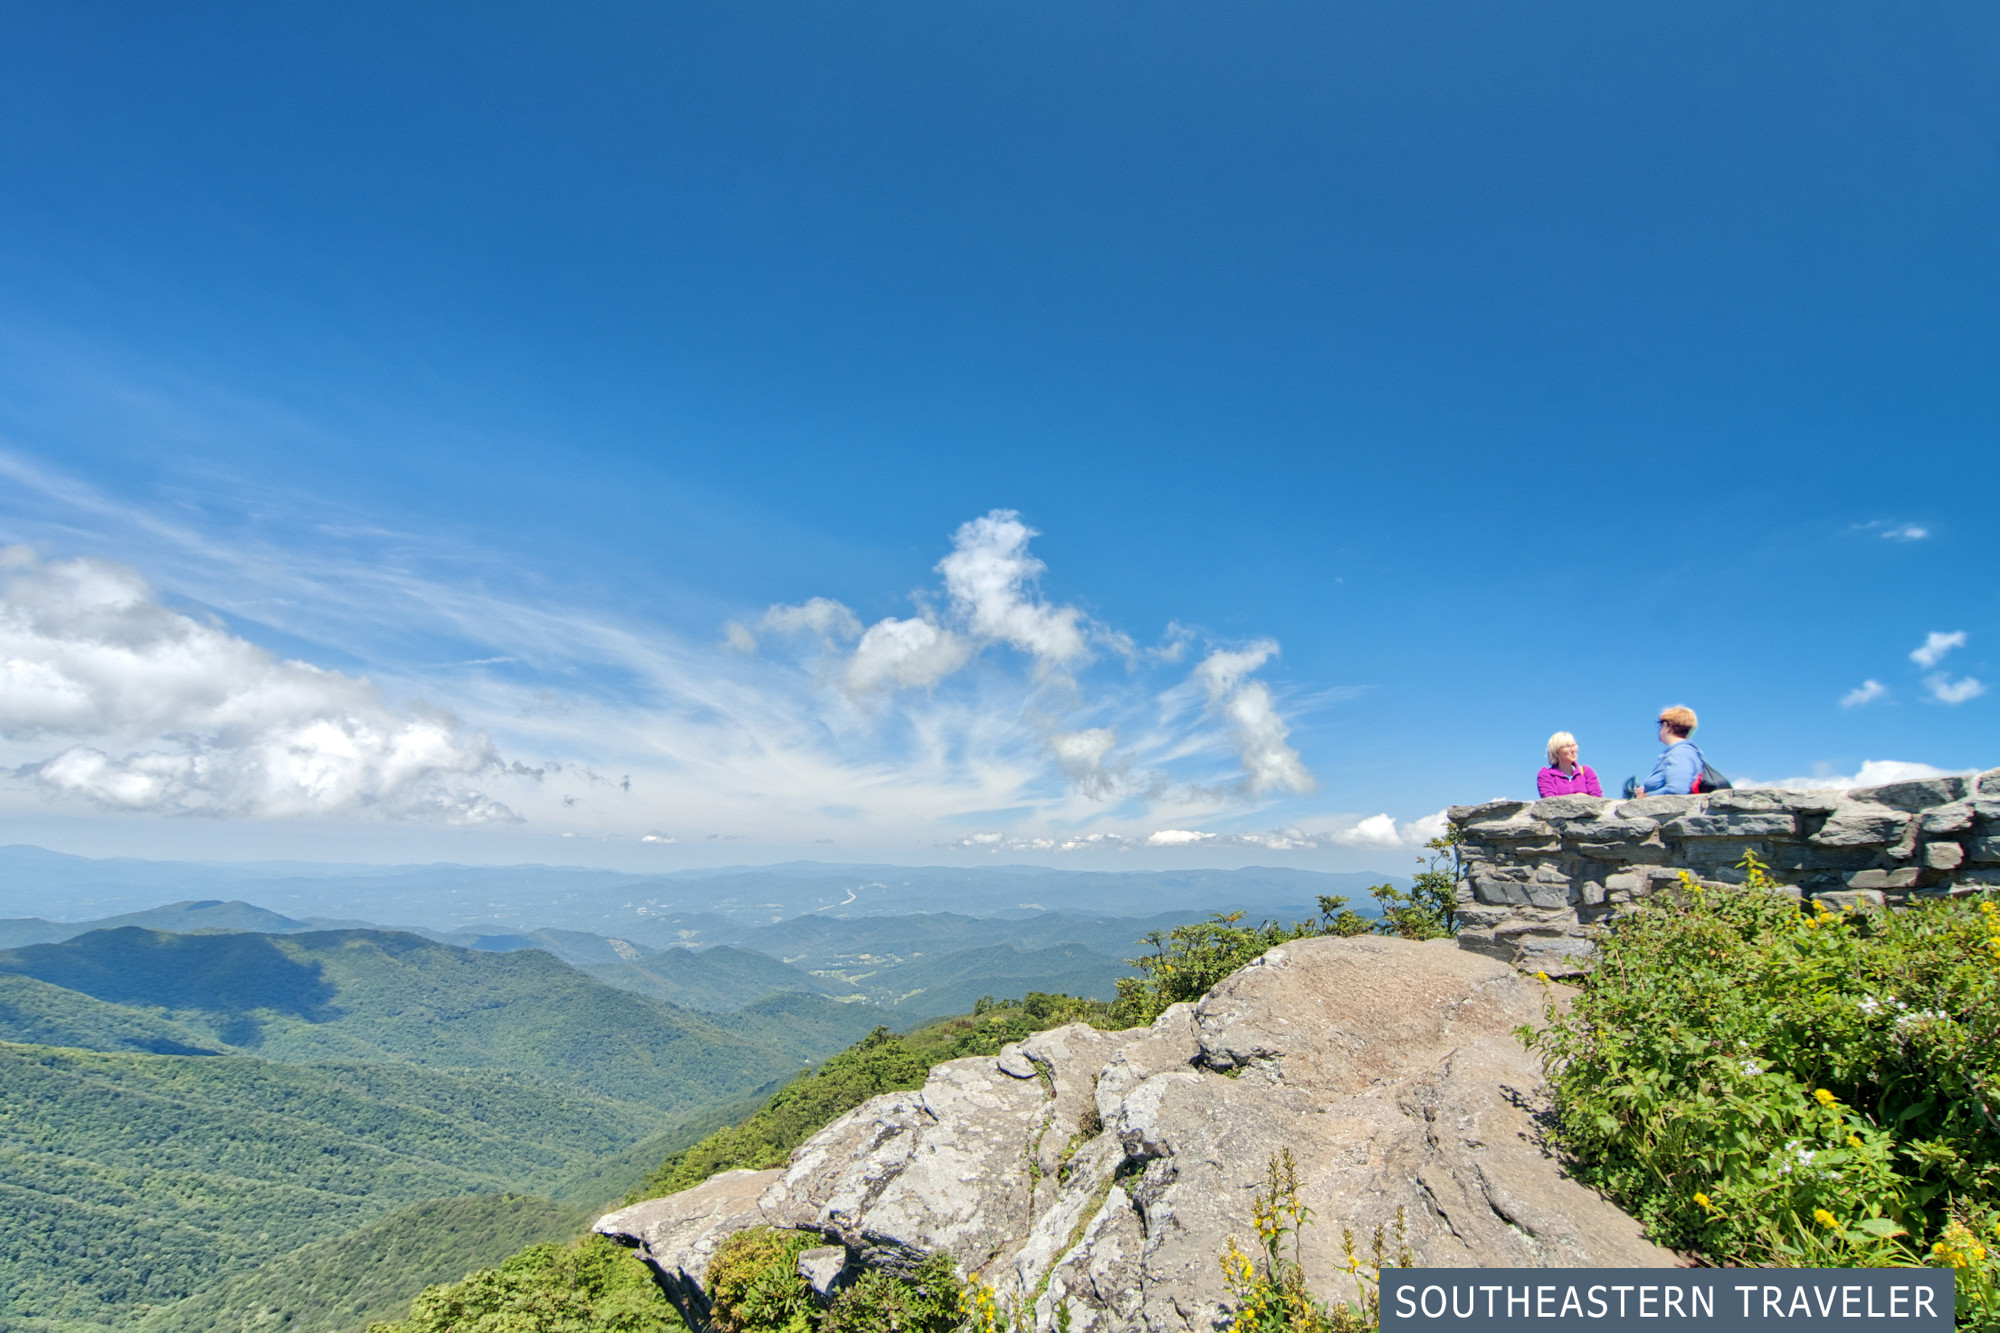 People enjoy the view from Craggy Pinnacle on the Blue Ridge Parkway near Asheville, North Carolina